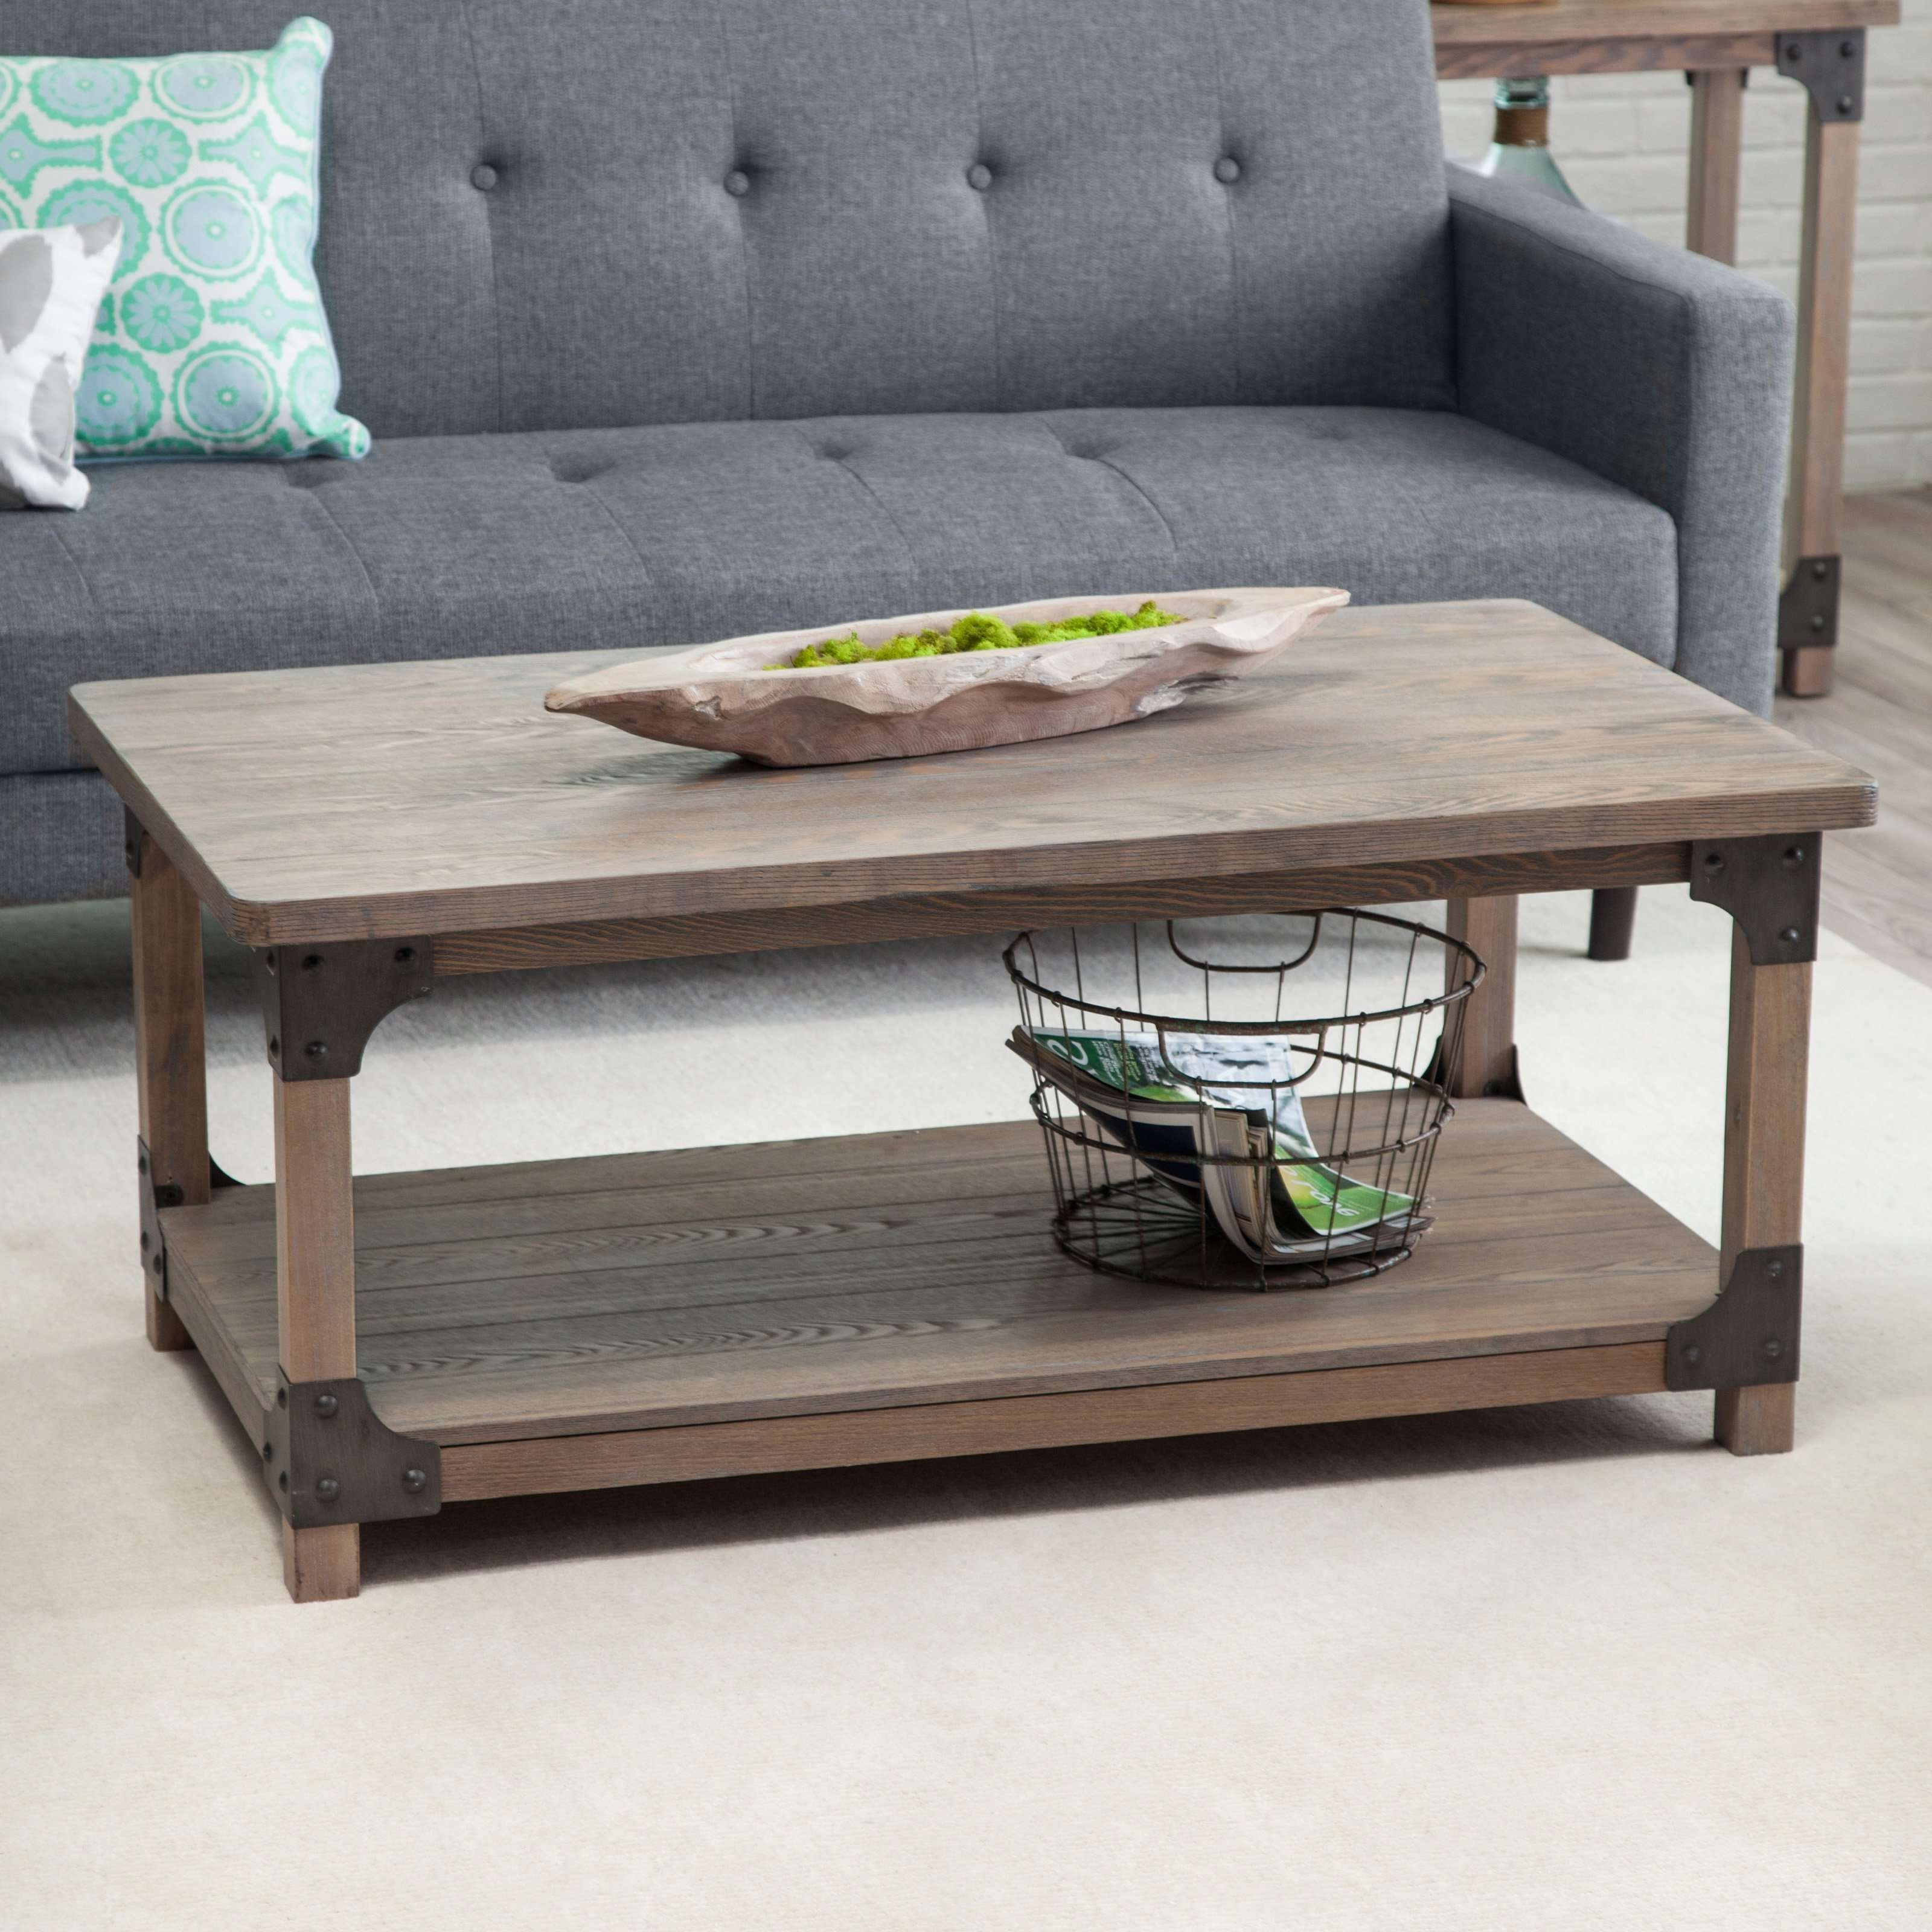 Tv : Riveting Rustic Coffee Table And Tv Stands Ravishing Rustic With Regard To Rustic Coffee Table And Tv Stands (View 6 of 15)